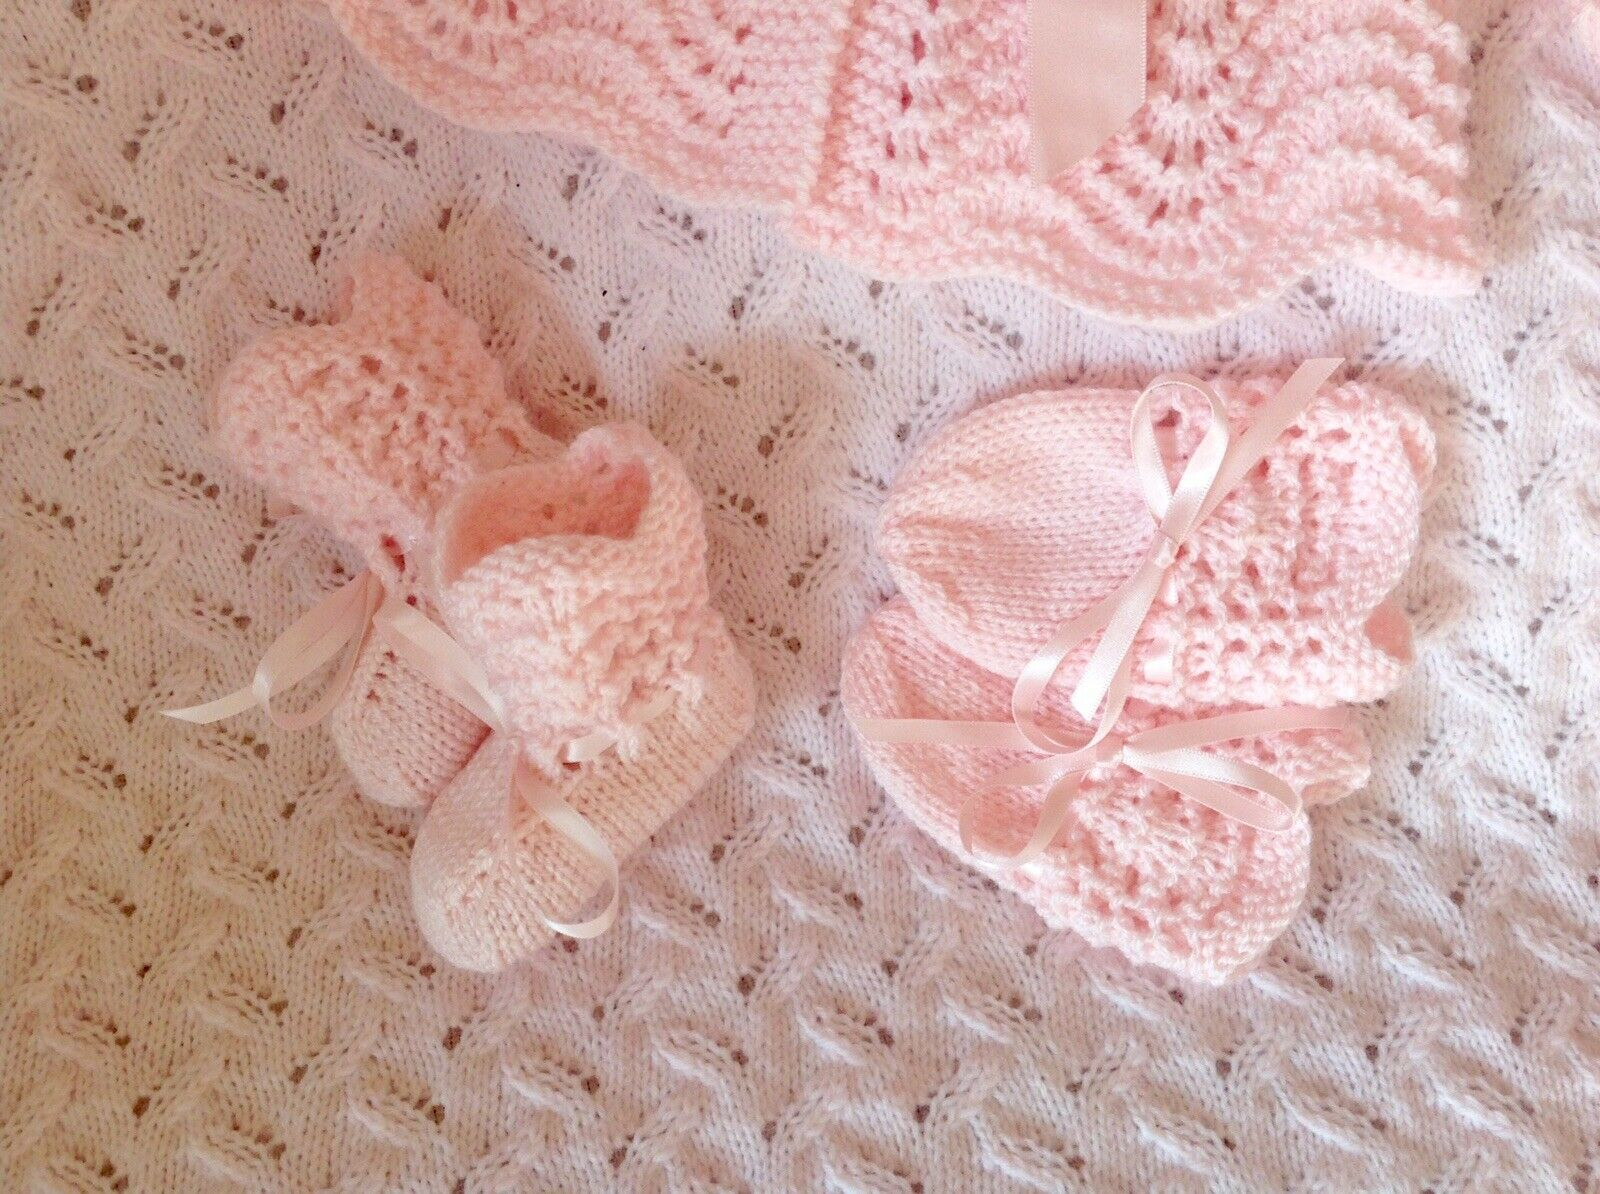 4 Pce Baby Set Newborn Or Reborn #22 Vintage Style Easy Knitting Instructions